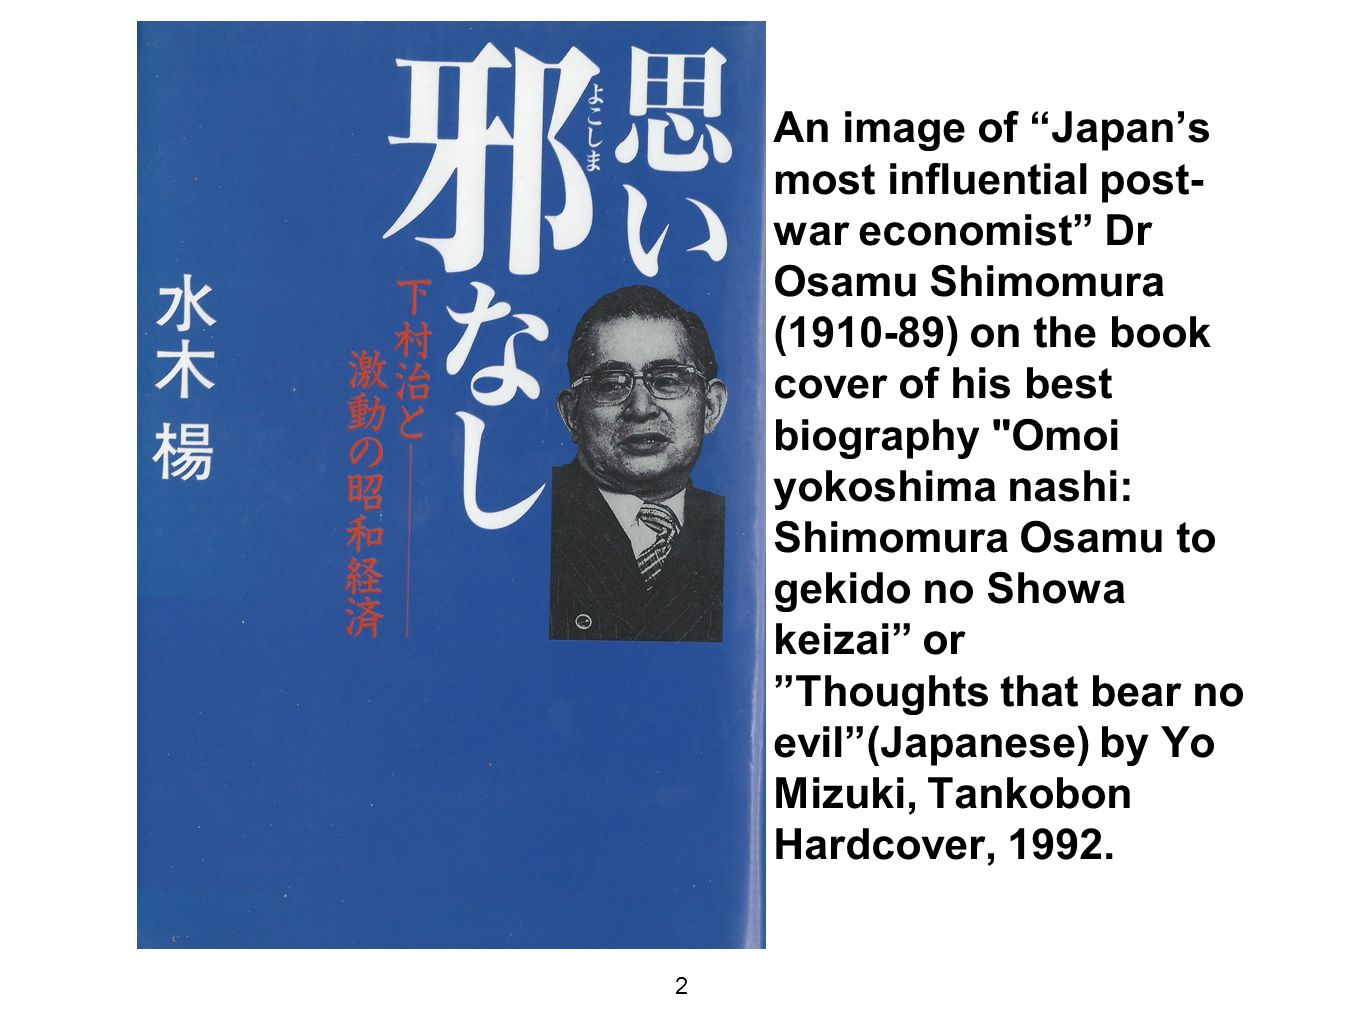 An image of Japan's most influential post- war economist Dr Osamu Shimomura ( ) on the book cover of his best biography Omoi yokoshima nashi: Shimomura Osamu to gekido no Showa keizai or Thoughts that bear no evil (Japanese) by Yo Mizuki, Tankobon Hardcover, 1992.